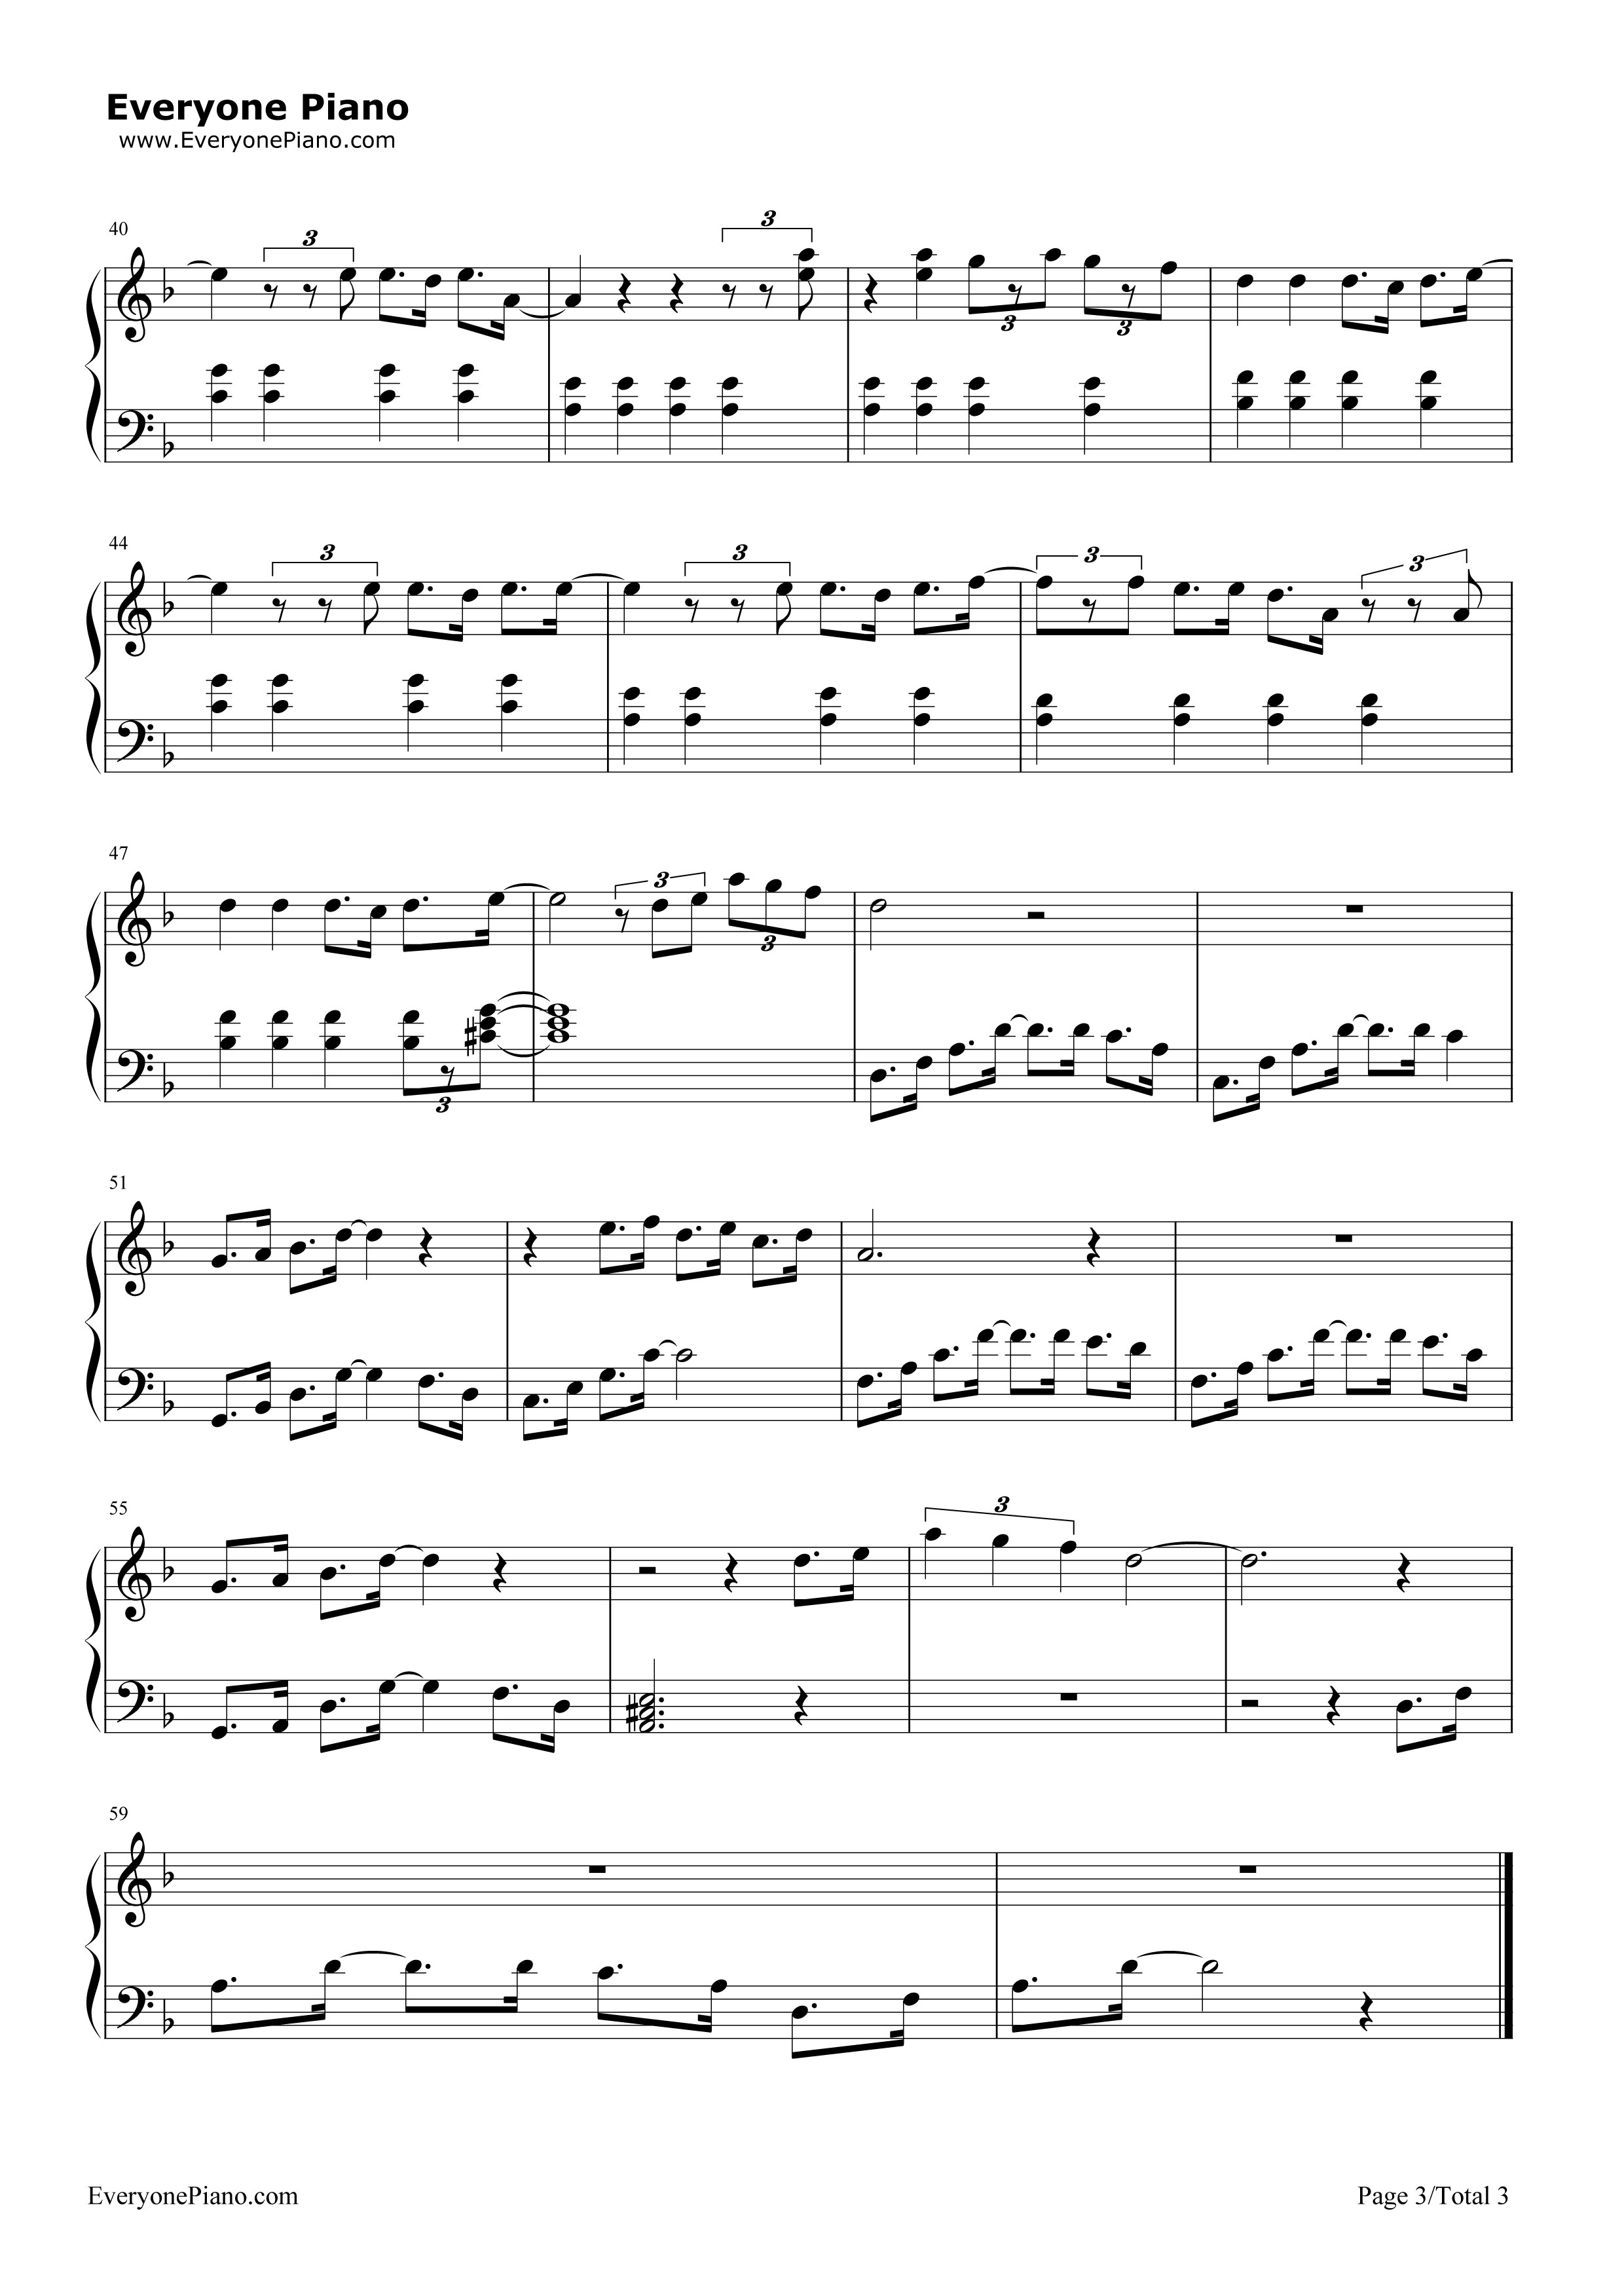 City of stars la la land theme stave preview 3 free piano sheet listen now print sheet city of stars la la land theme stave preview 3 hexwebz Image collections